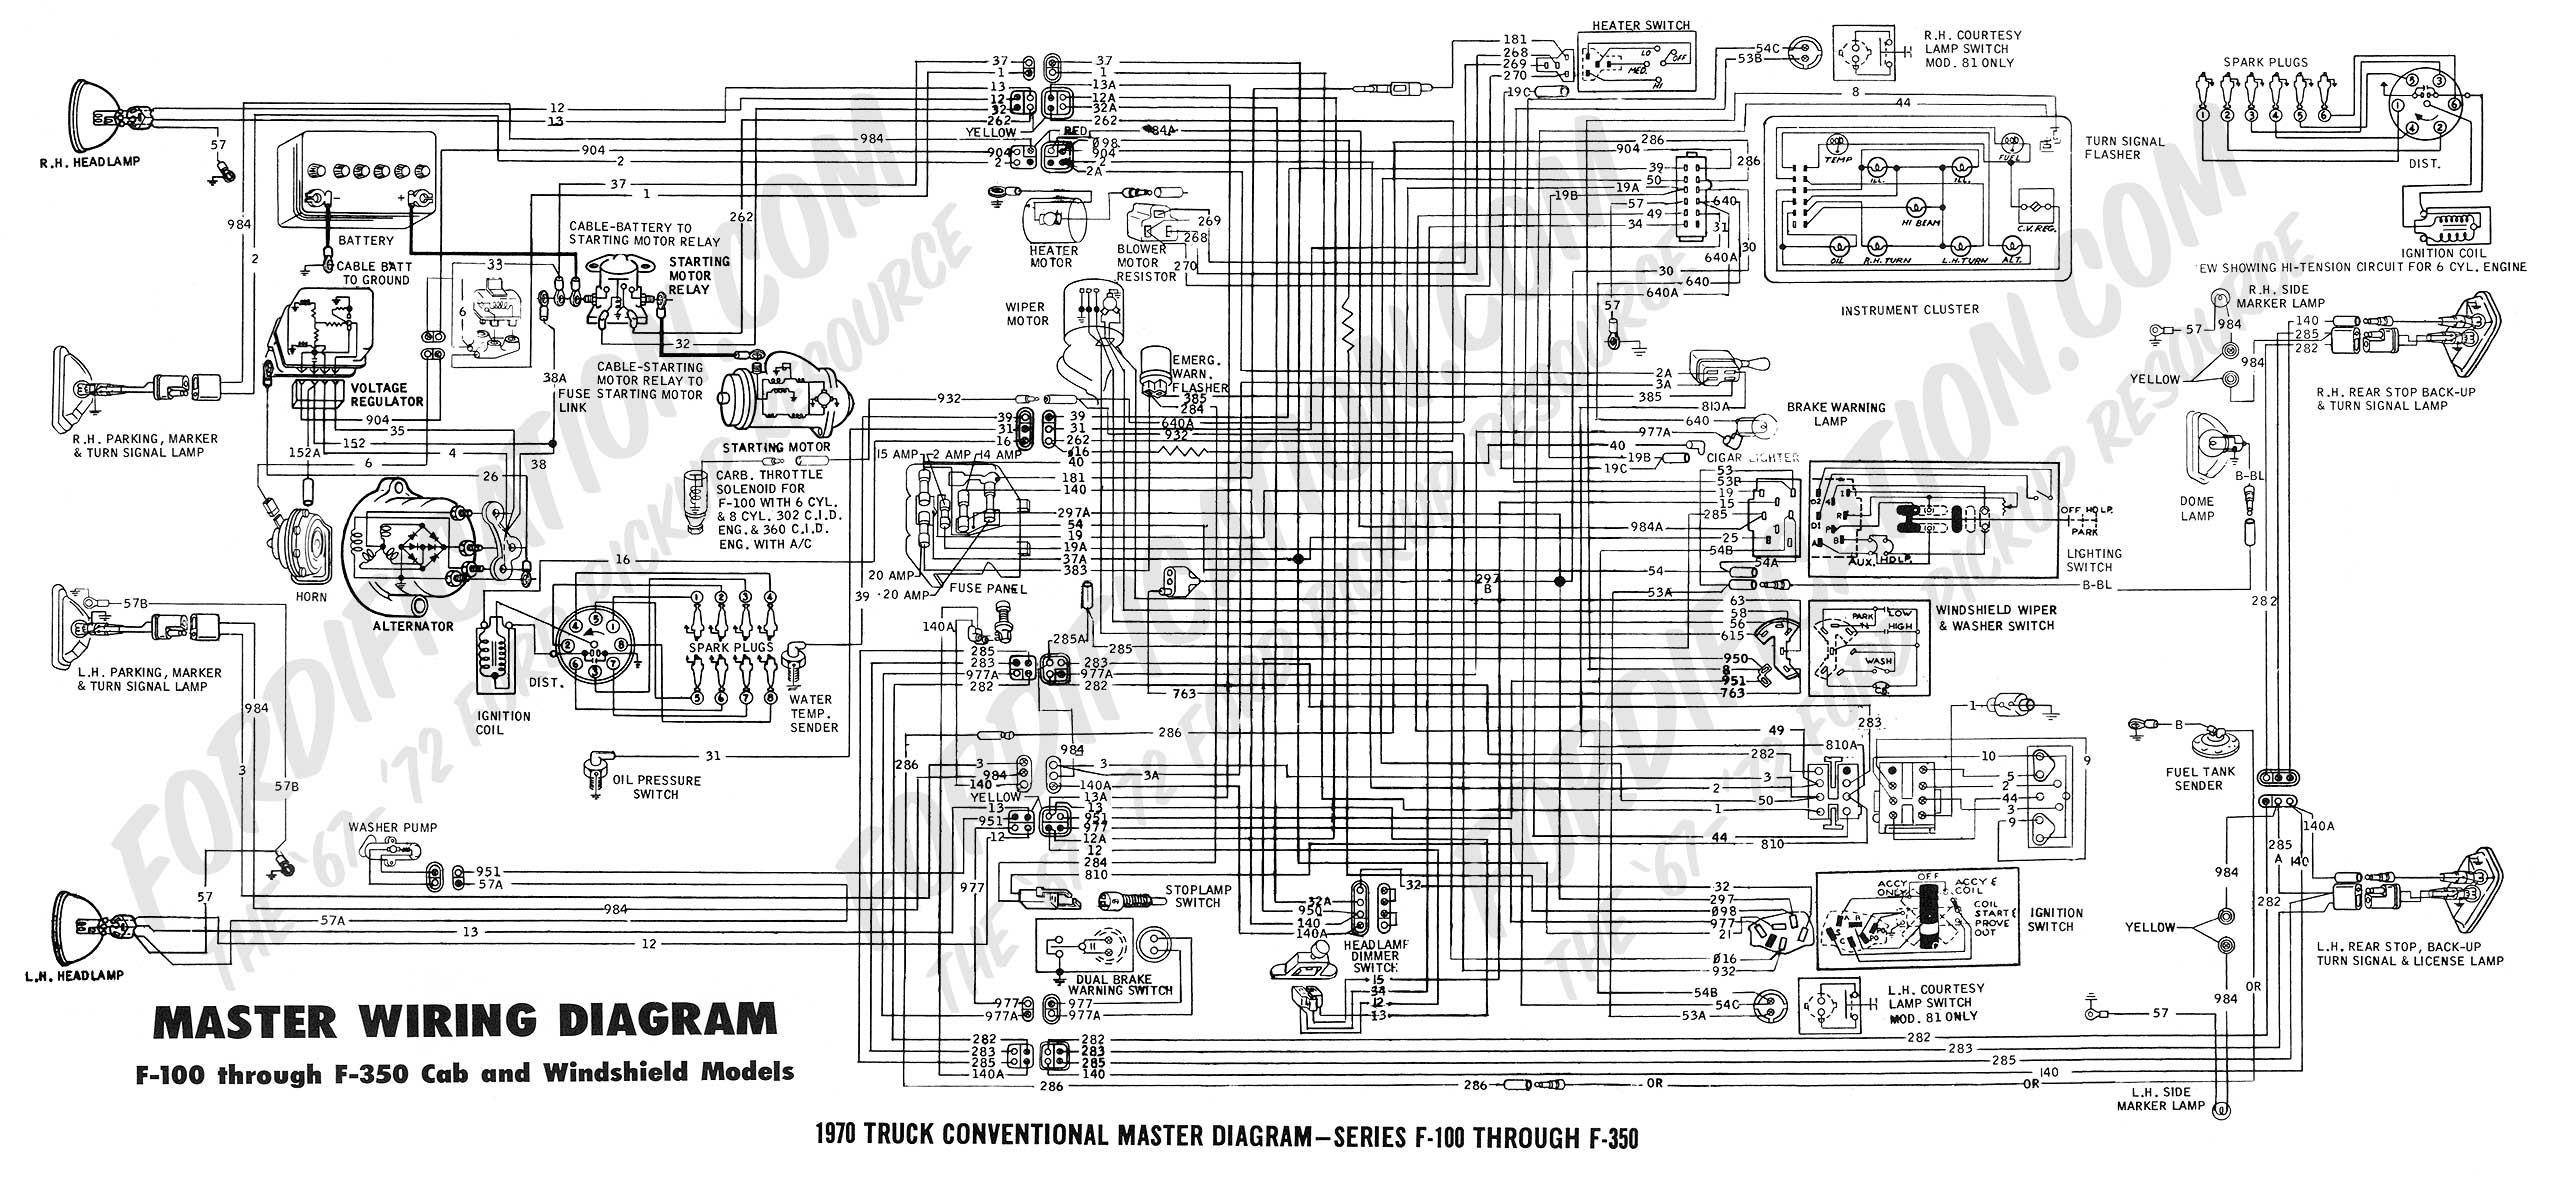 Schematics h on system diagrams for honda civic hybrid